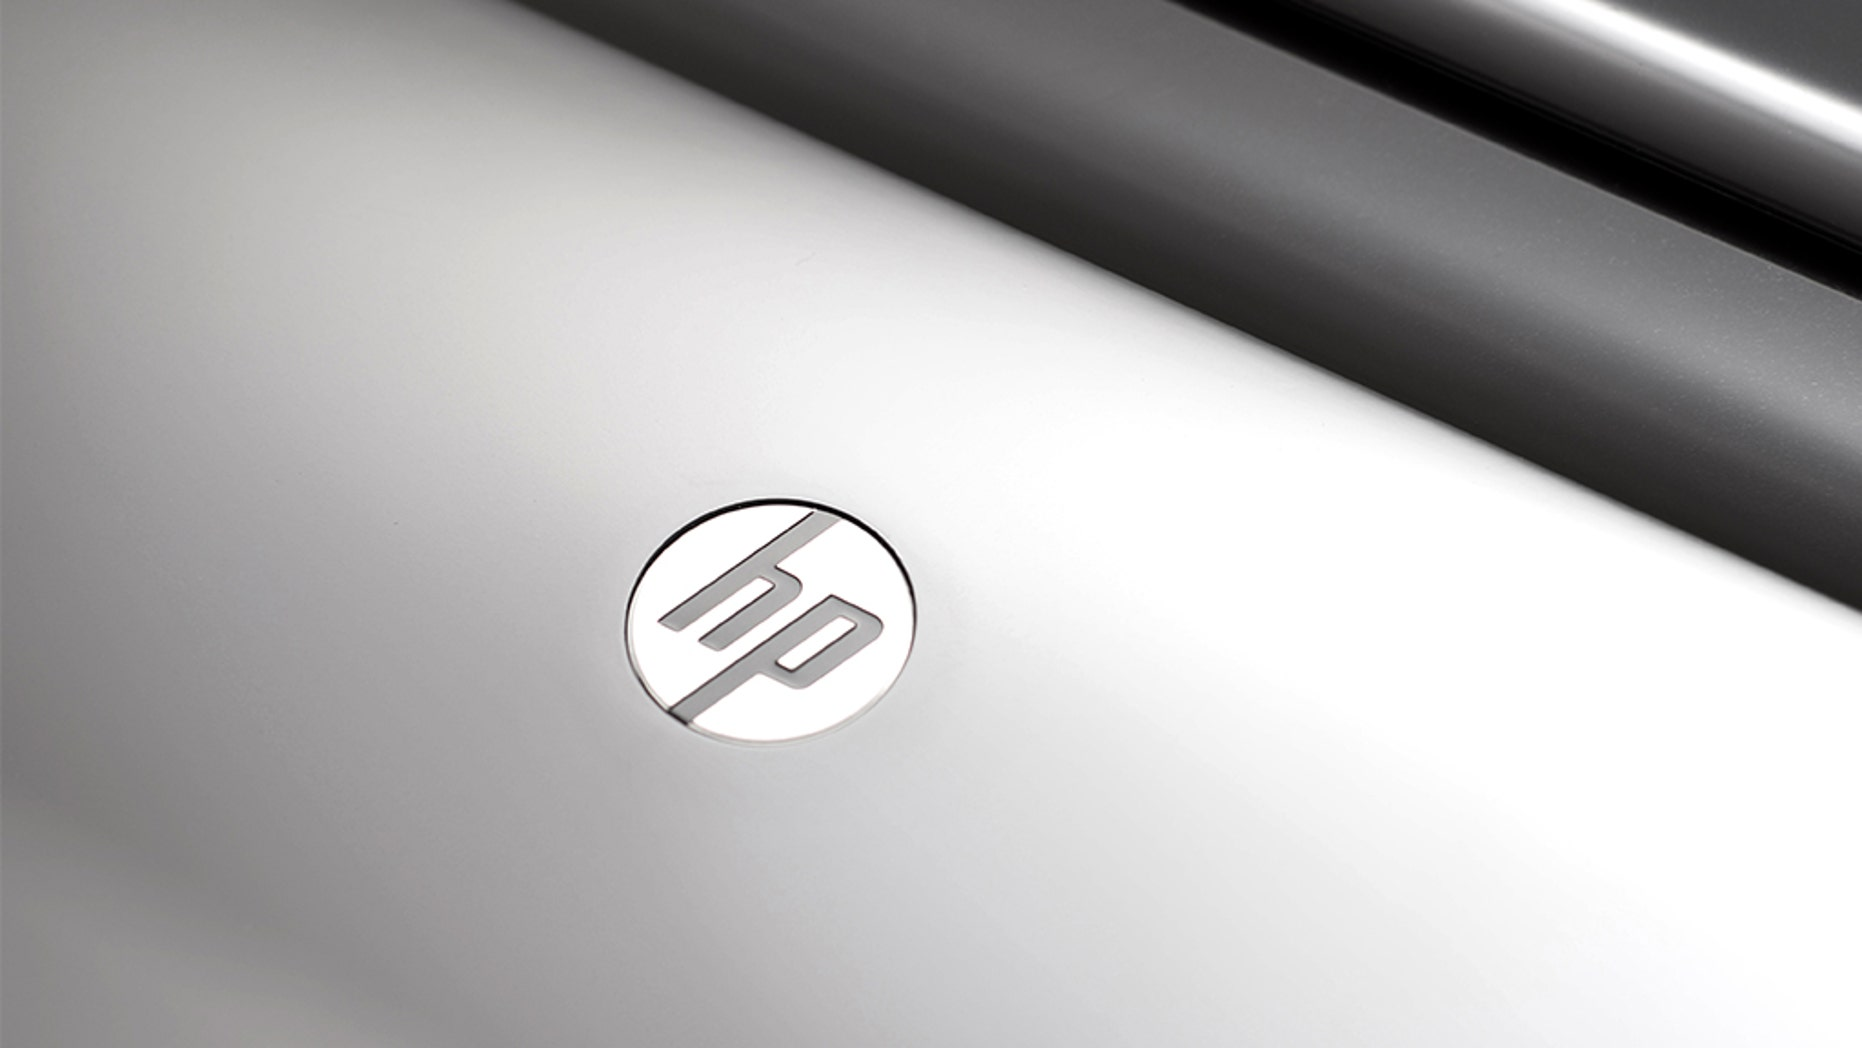 HP expanded their recall of lithium-ion batteries on Tuesday, after eight new reports in the U.S. of overheating, melting or charring, according to a recall notice. (Stock image)